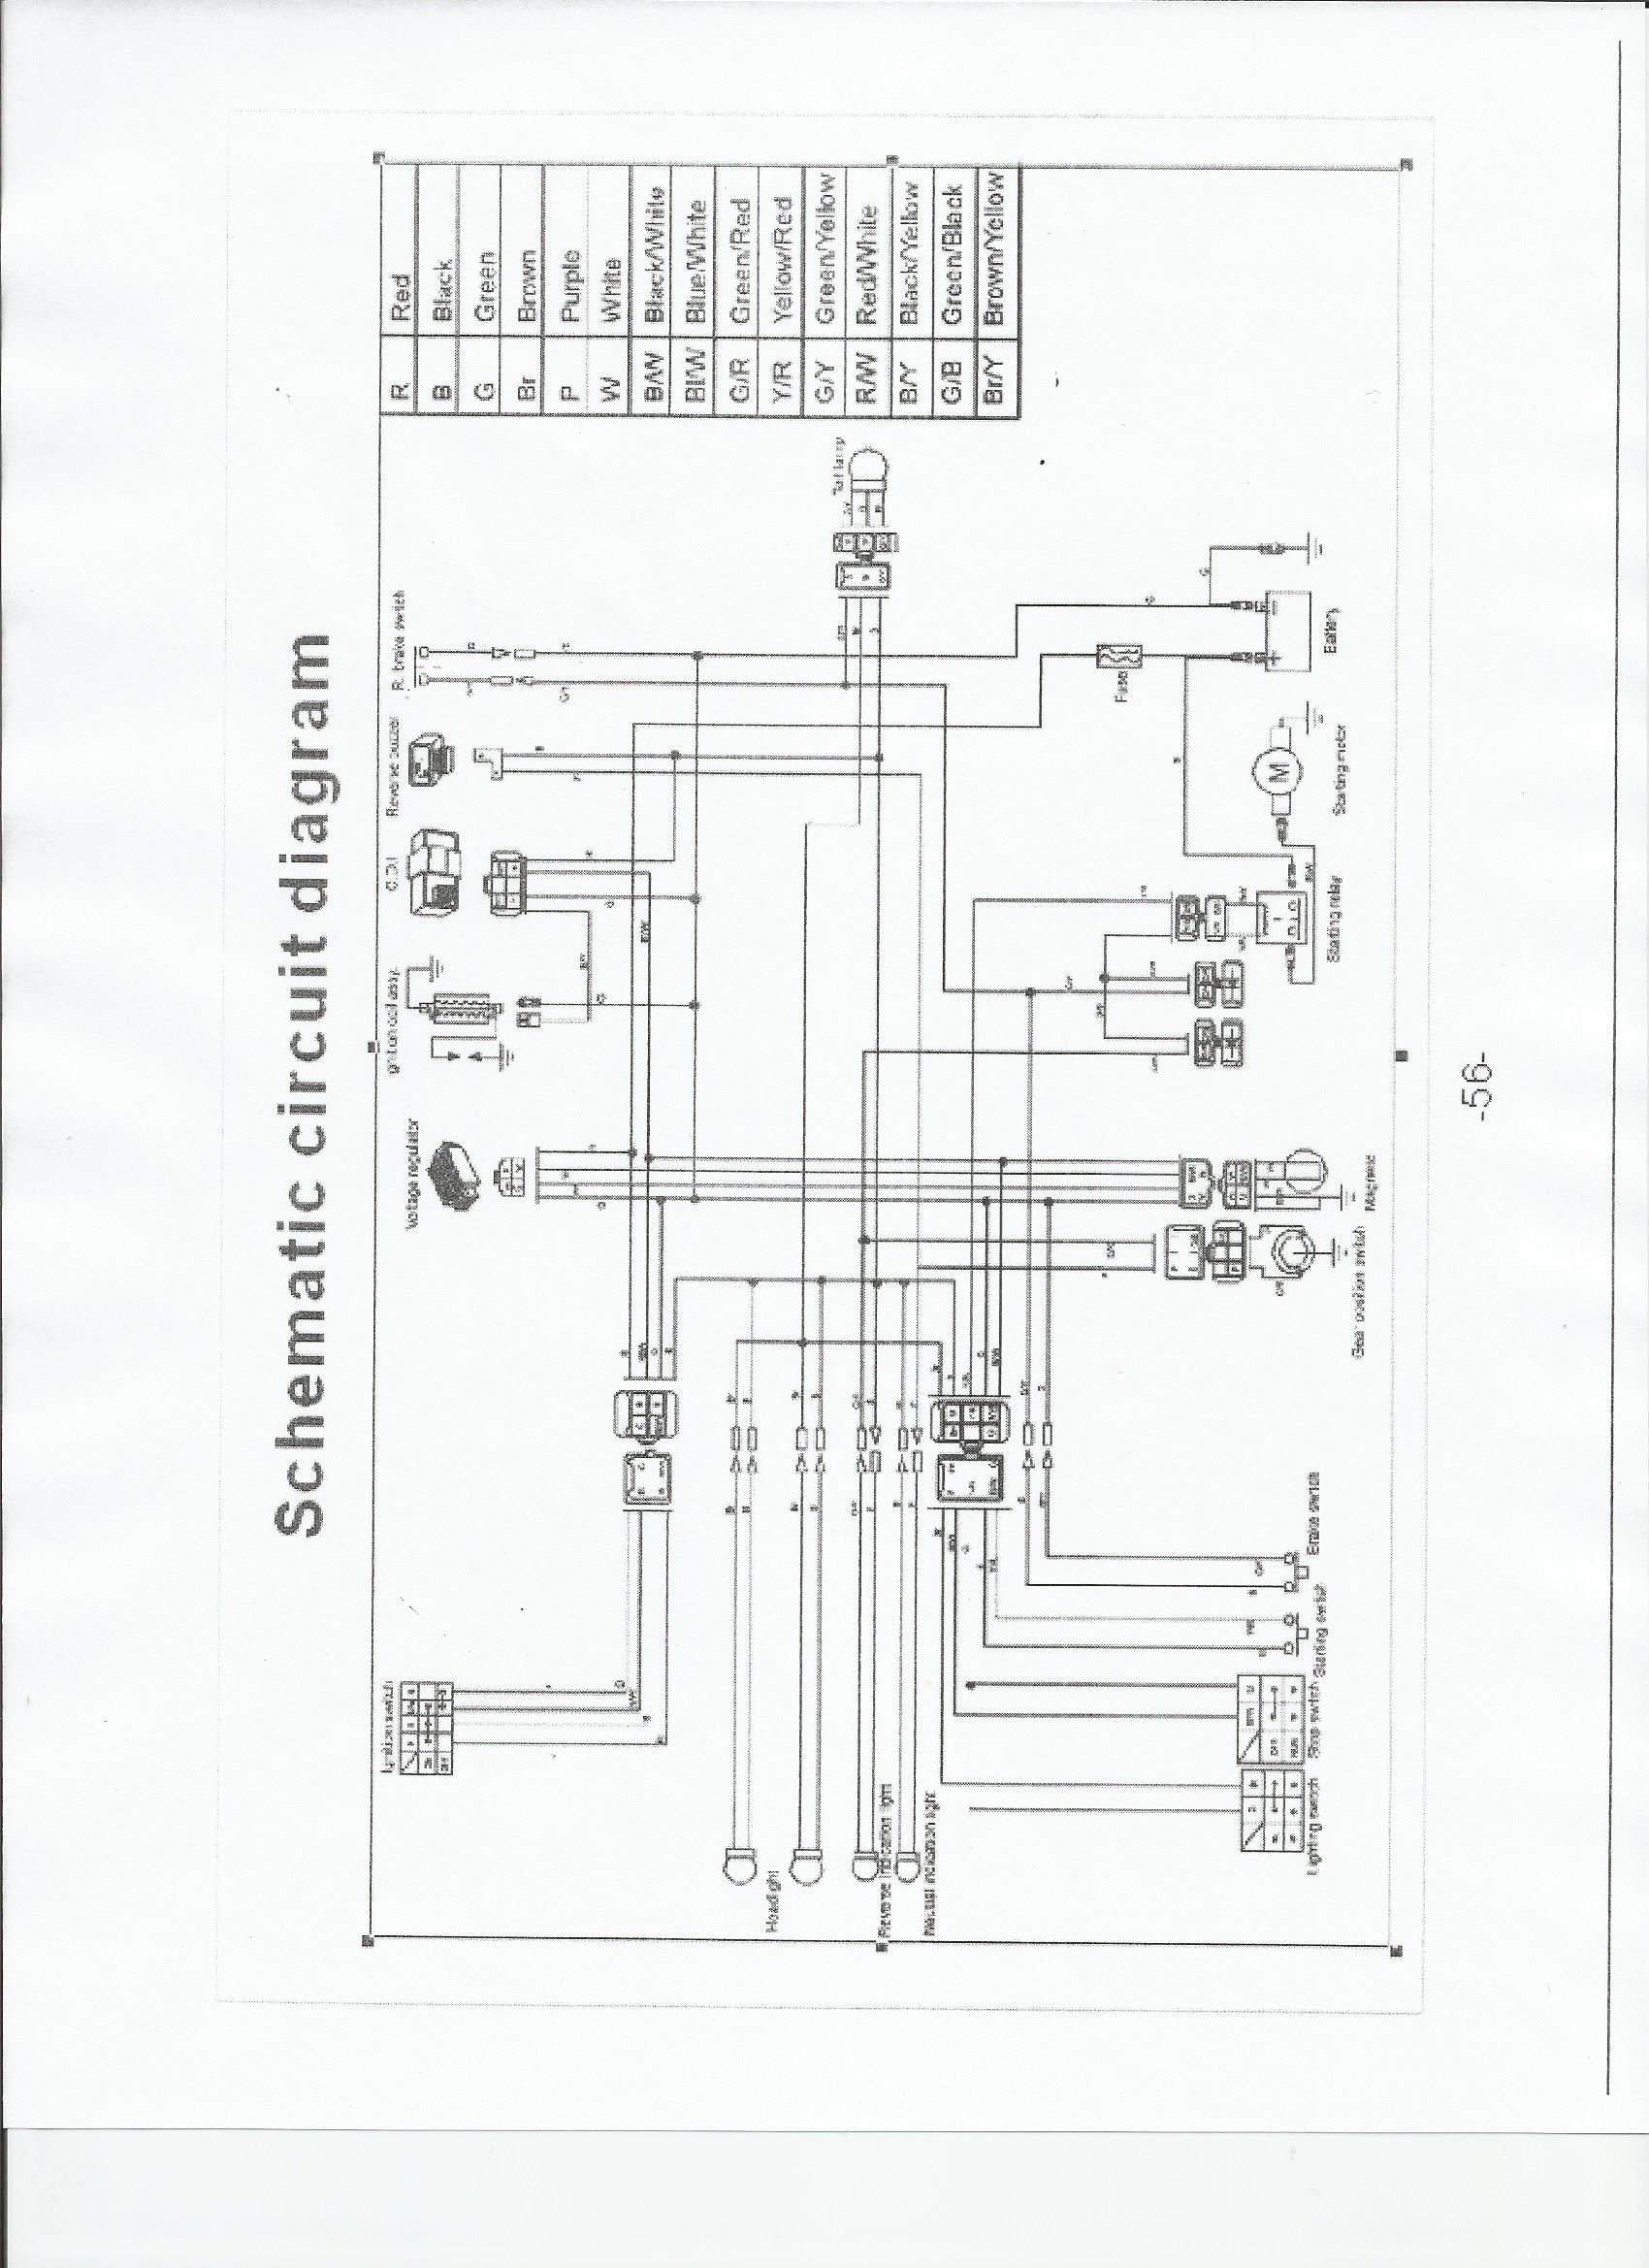 tao tao wiring schematic coolster 200cc wiring diagram wiring diagrams schematics